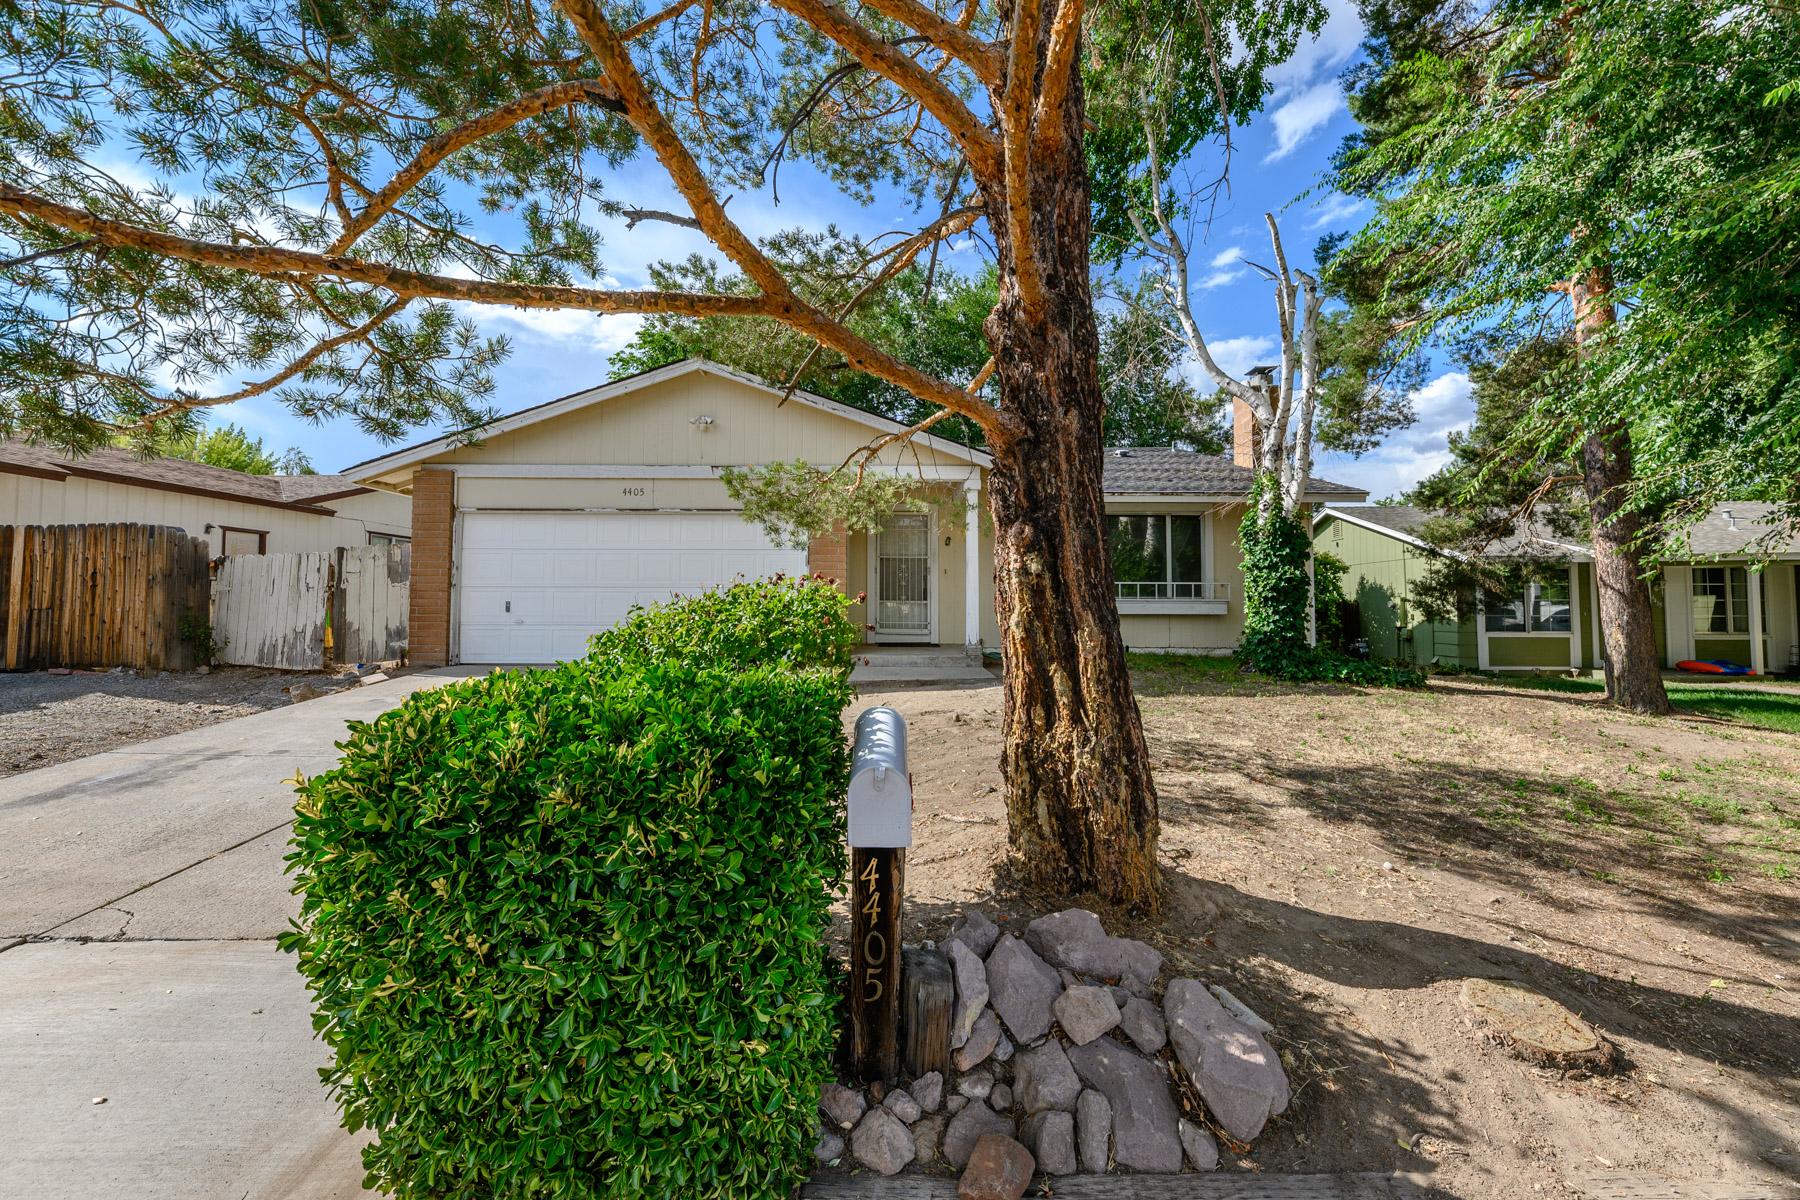 Additional photo for property listing at 4405 Spring Drive, Reno, Nevada 4405 Spring Dr. Reno, Nevada 89502 United States